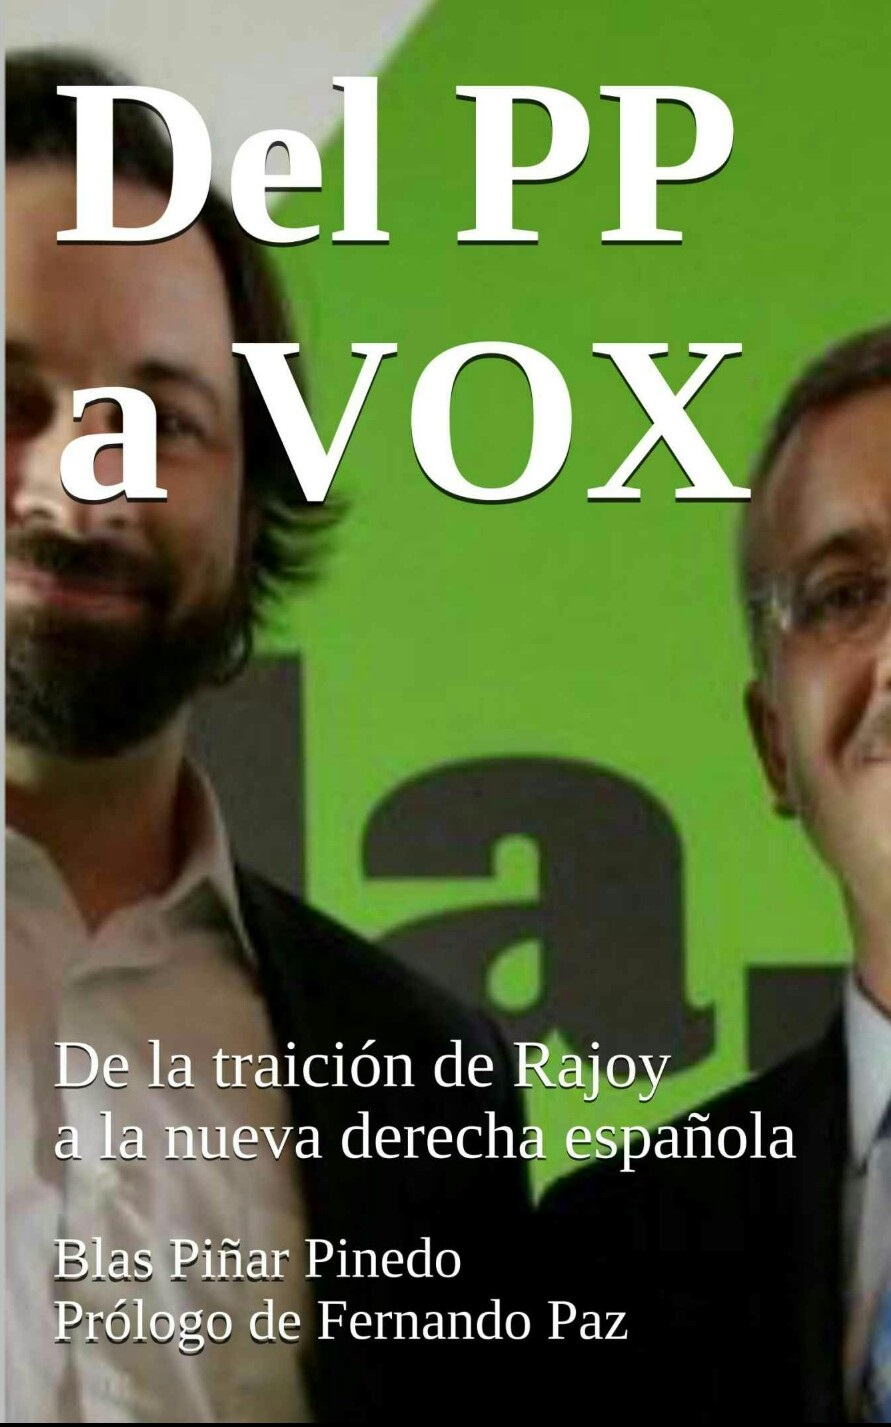 DEL PP A VOX, ebook en Amazon